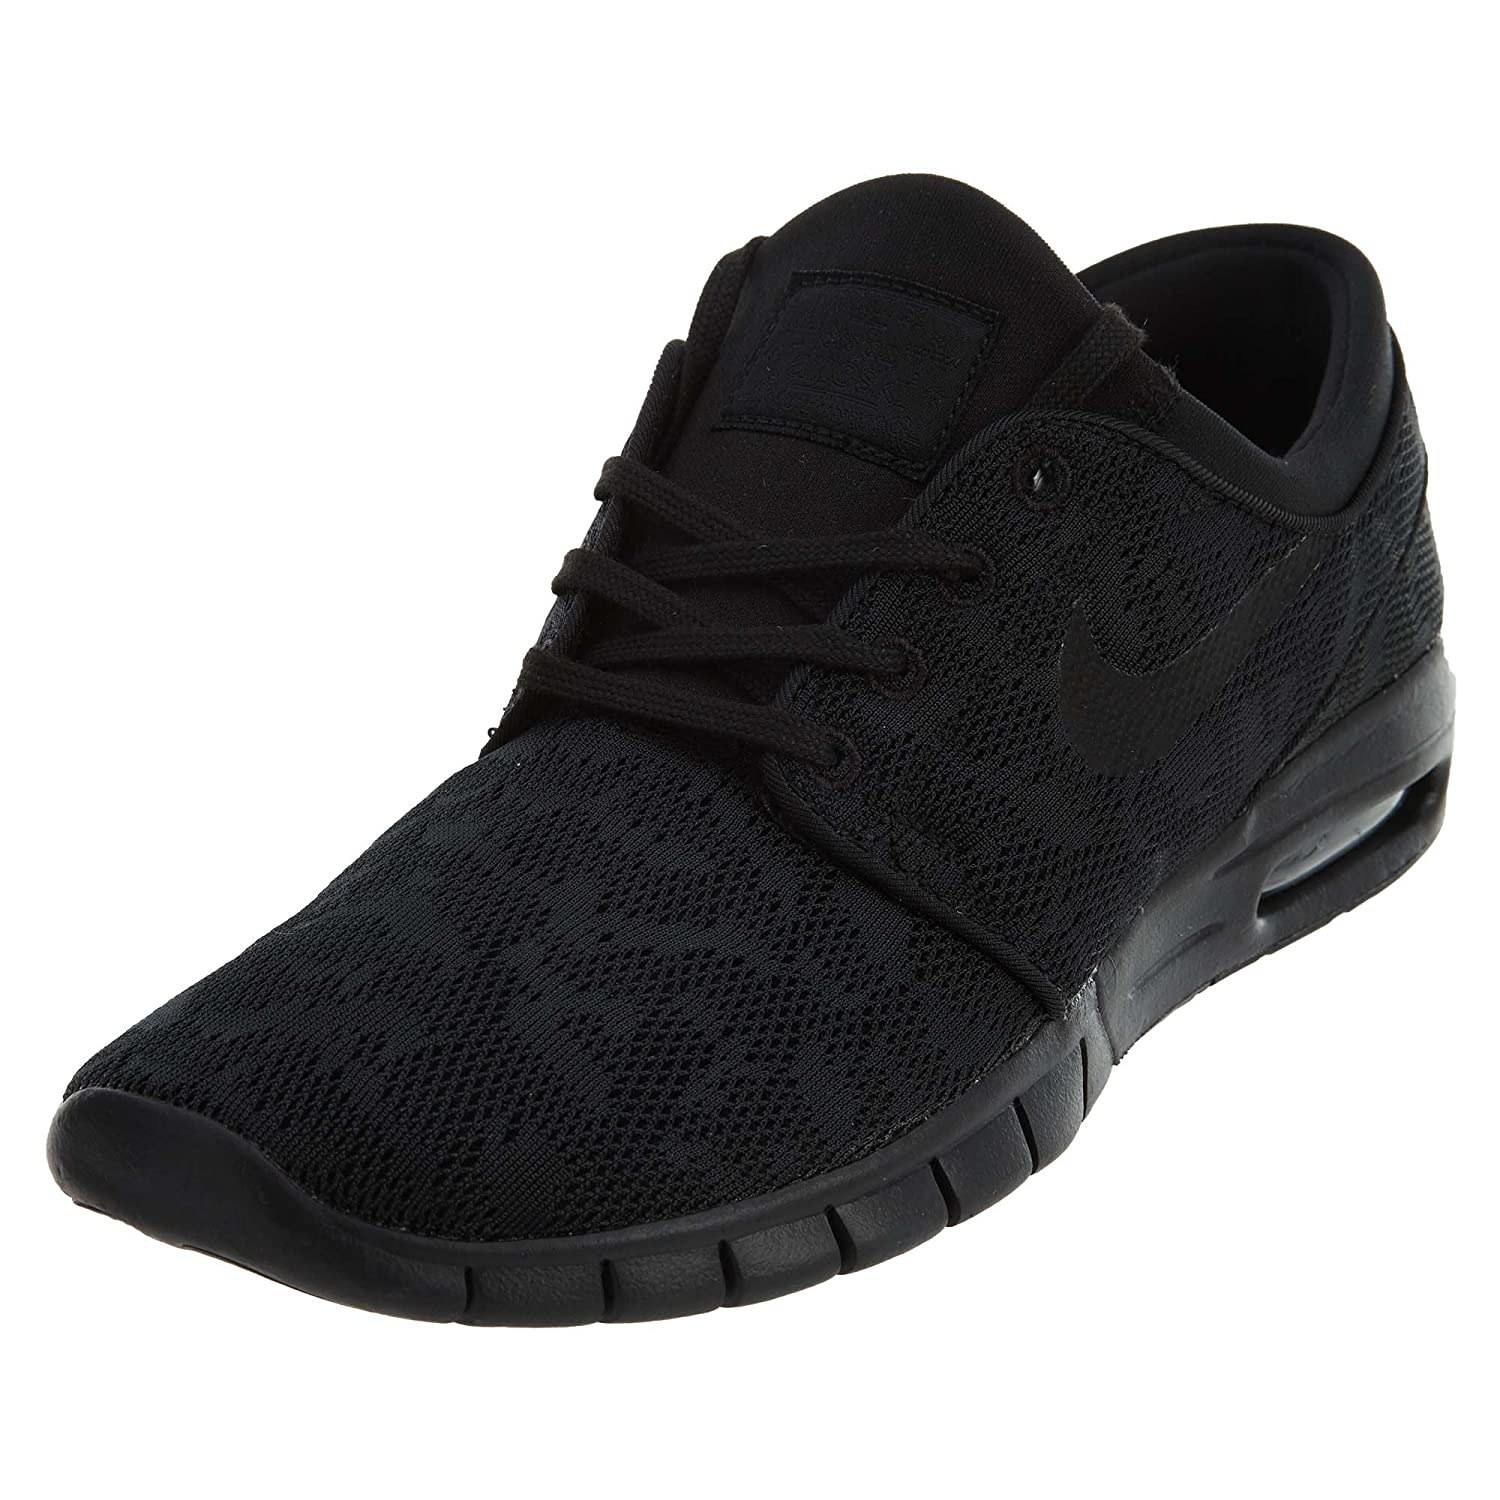 Black Black Nike Stefan Janoski Max, Unisex Adults' Low-Top Sneakers